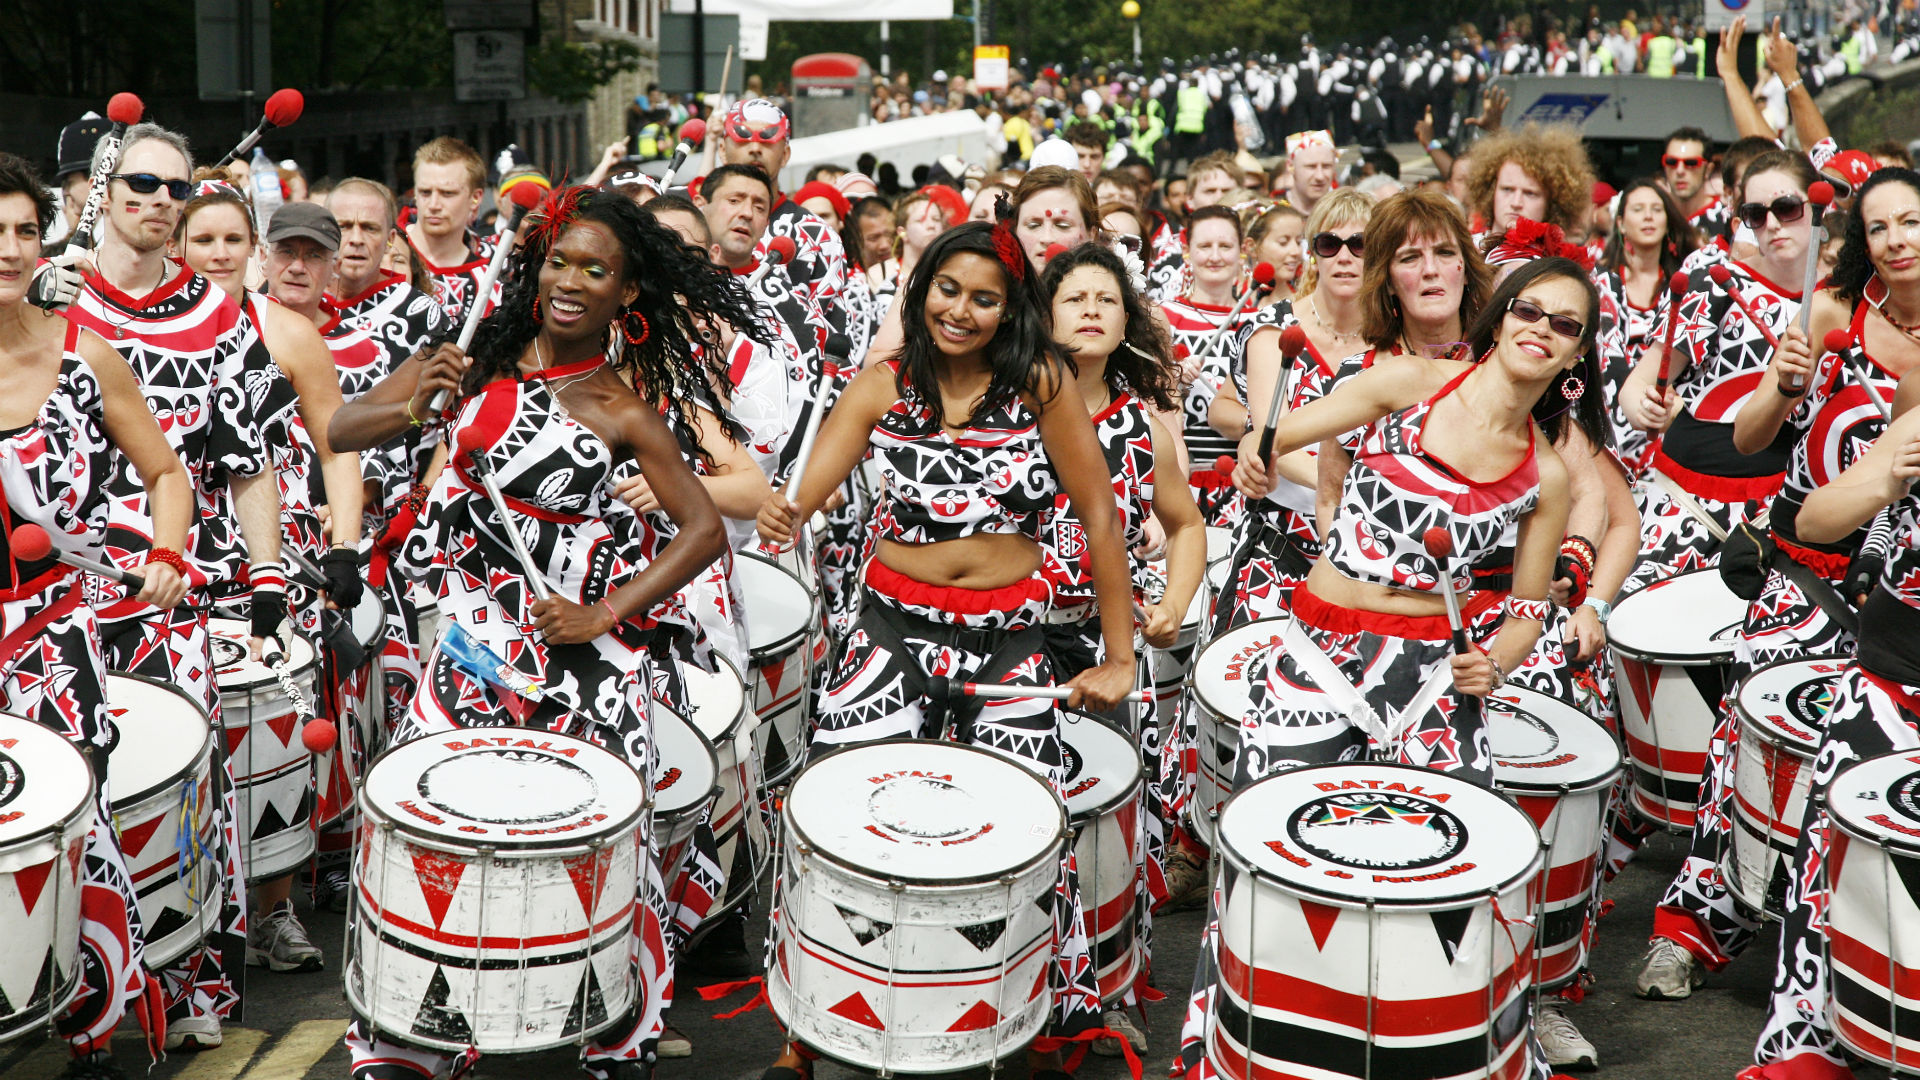 A band of drummers perform during Notting Hill Carnival parade